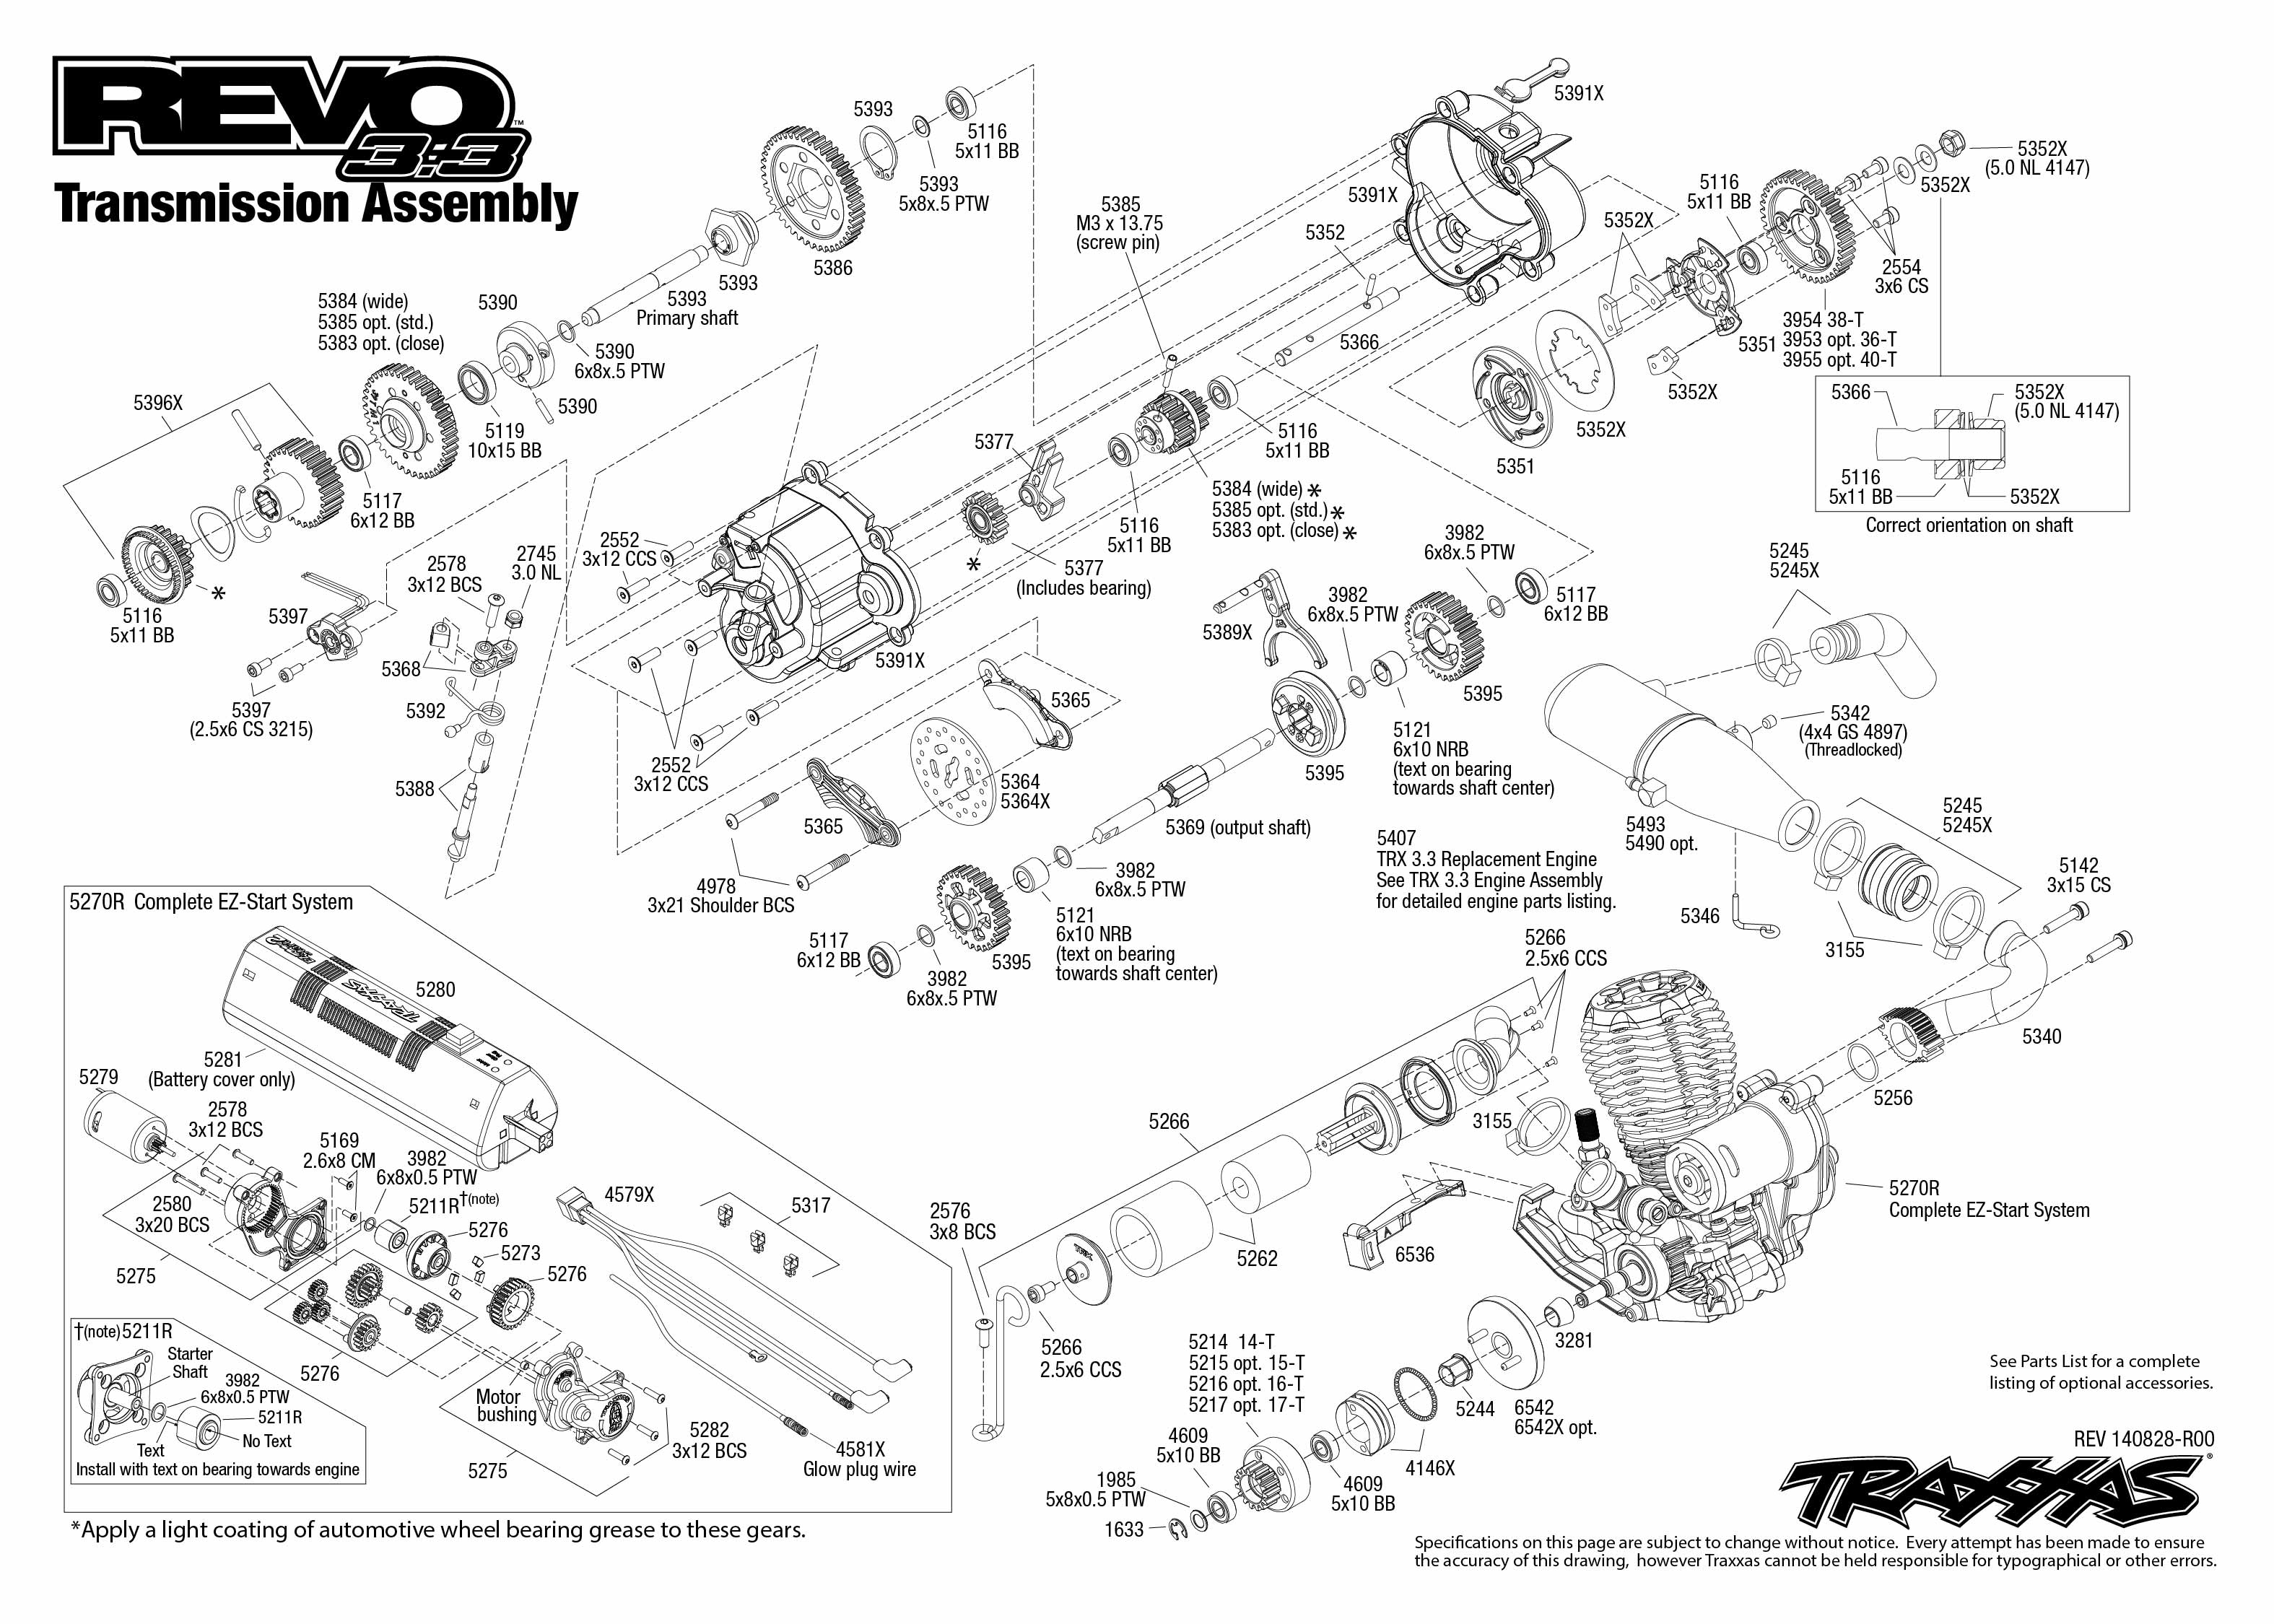 Revo 3 3 1 Transmission Assembly Exploded View